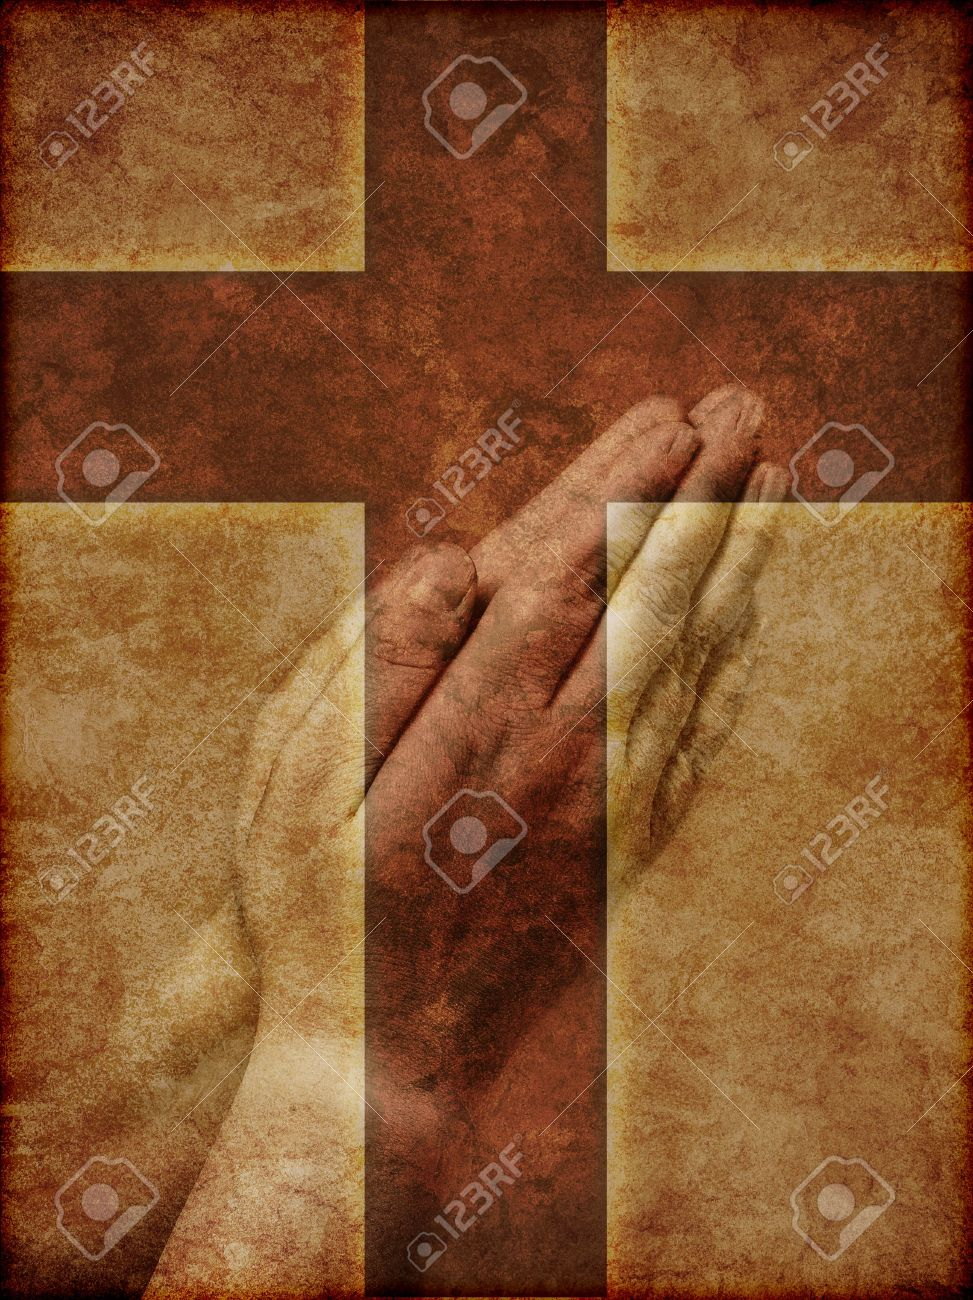 Praying Hands Superimposed over Christian Cross - textured illustration. Stock Illustration - 7633179